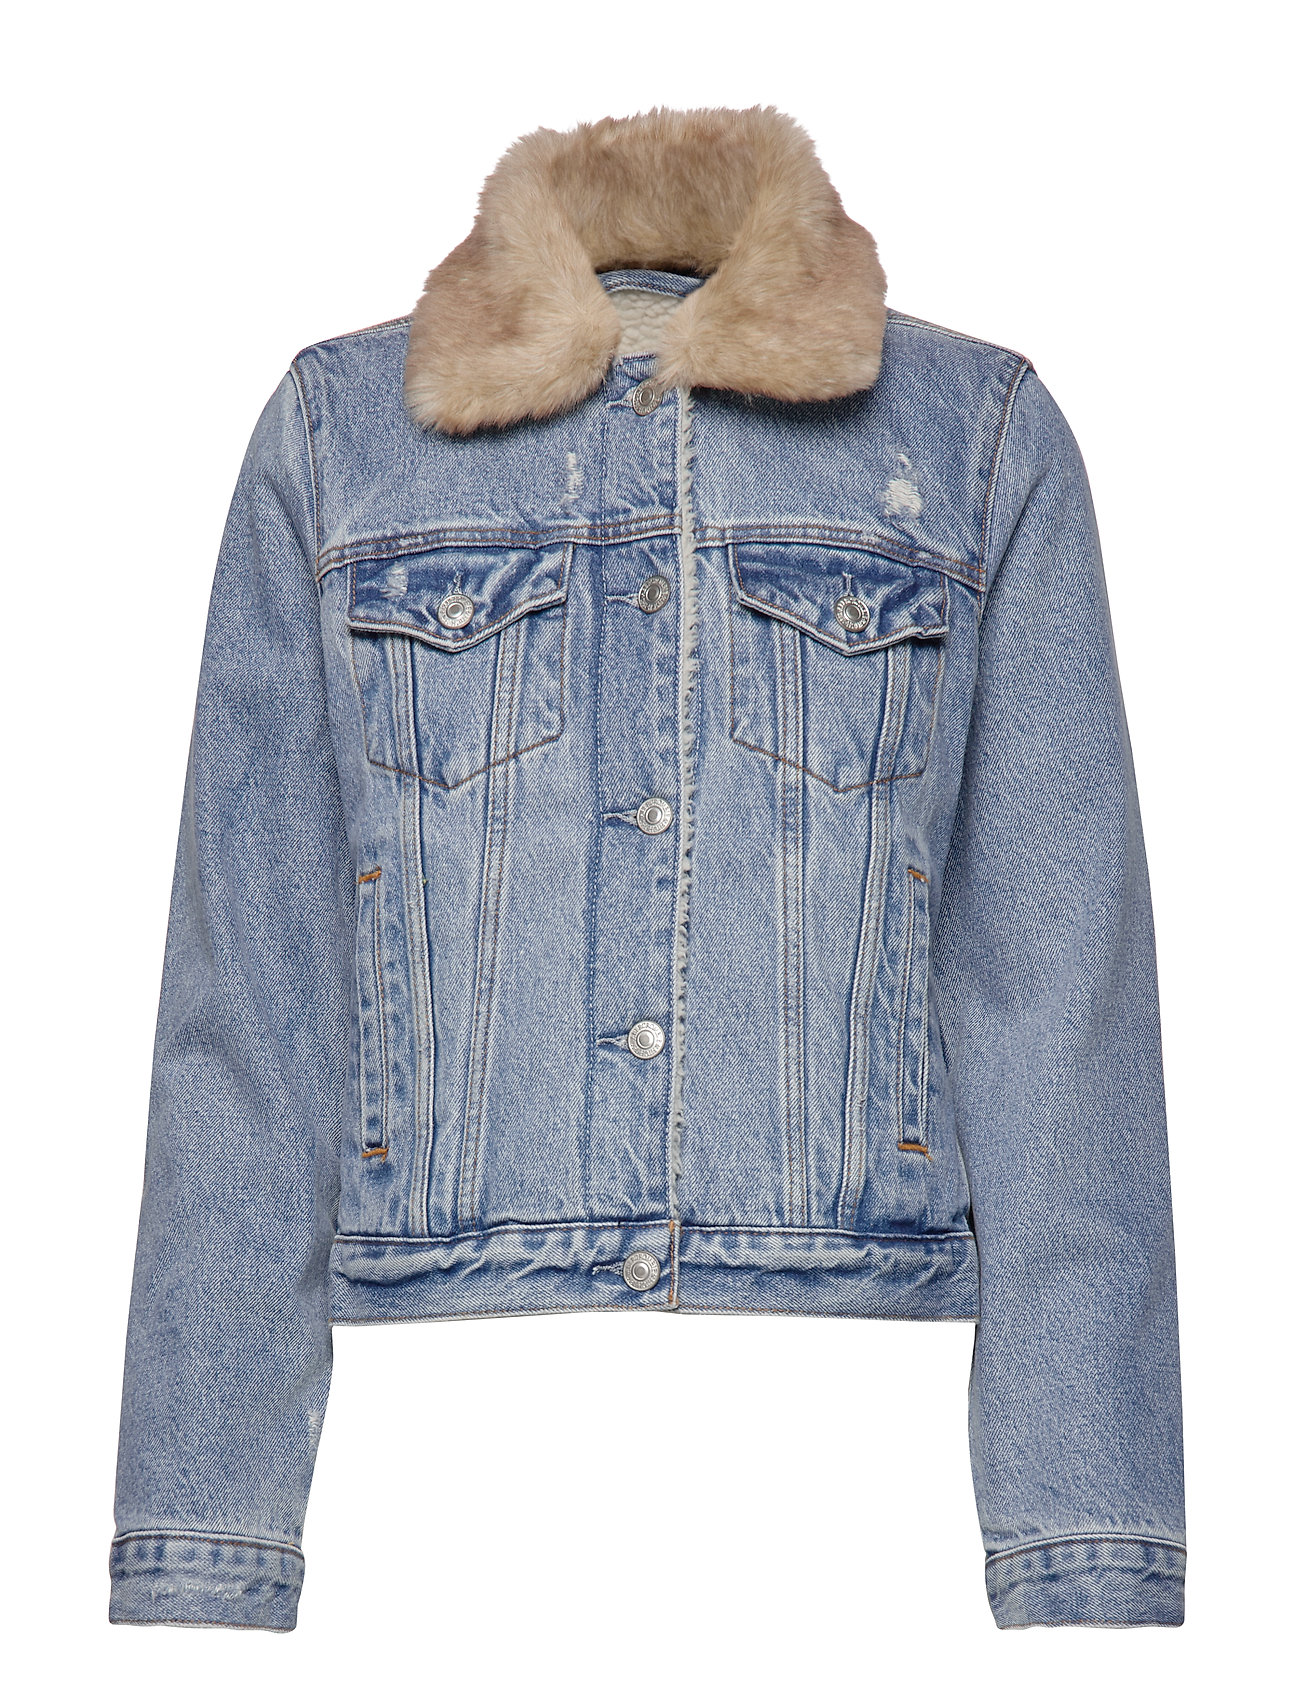 Abercrombie & Fitch Sherpa Collar Denim Coat - LIGHT BLUE DD